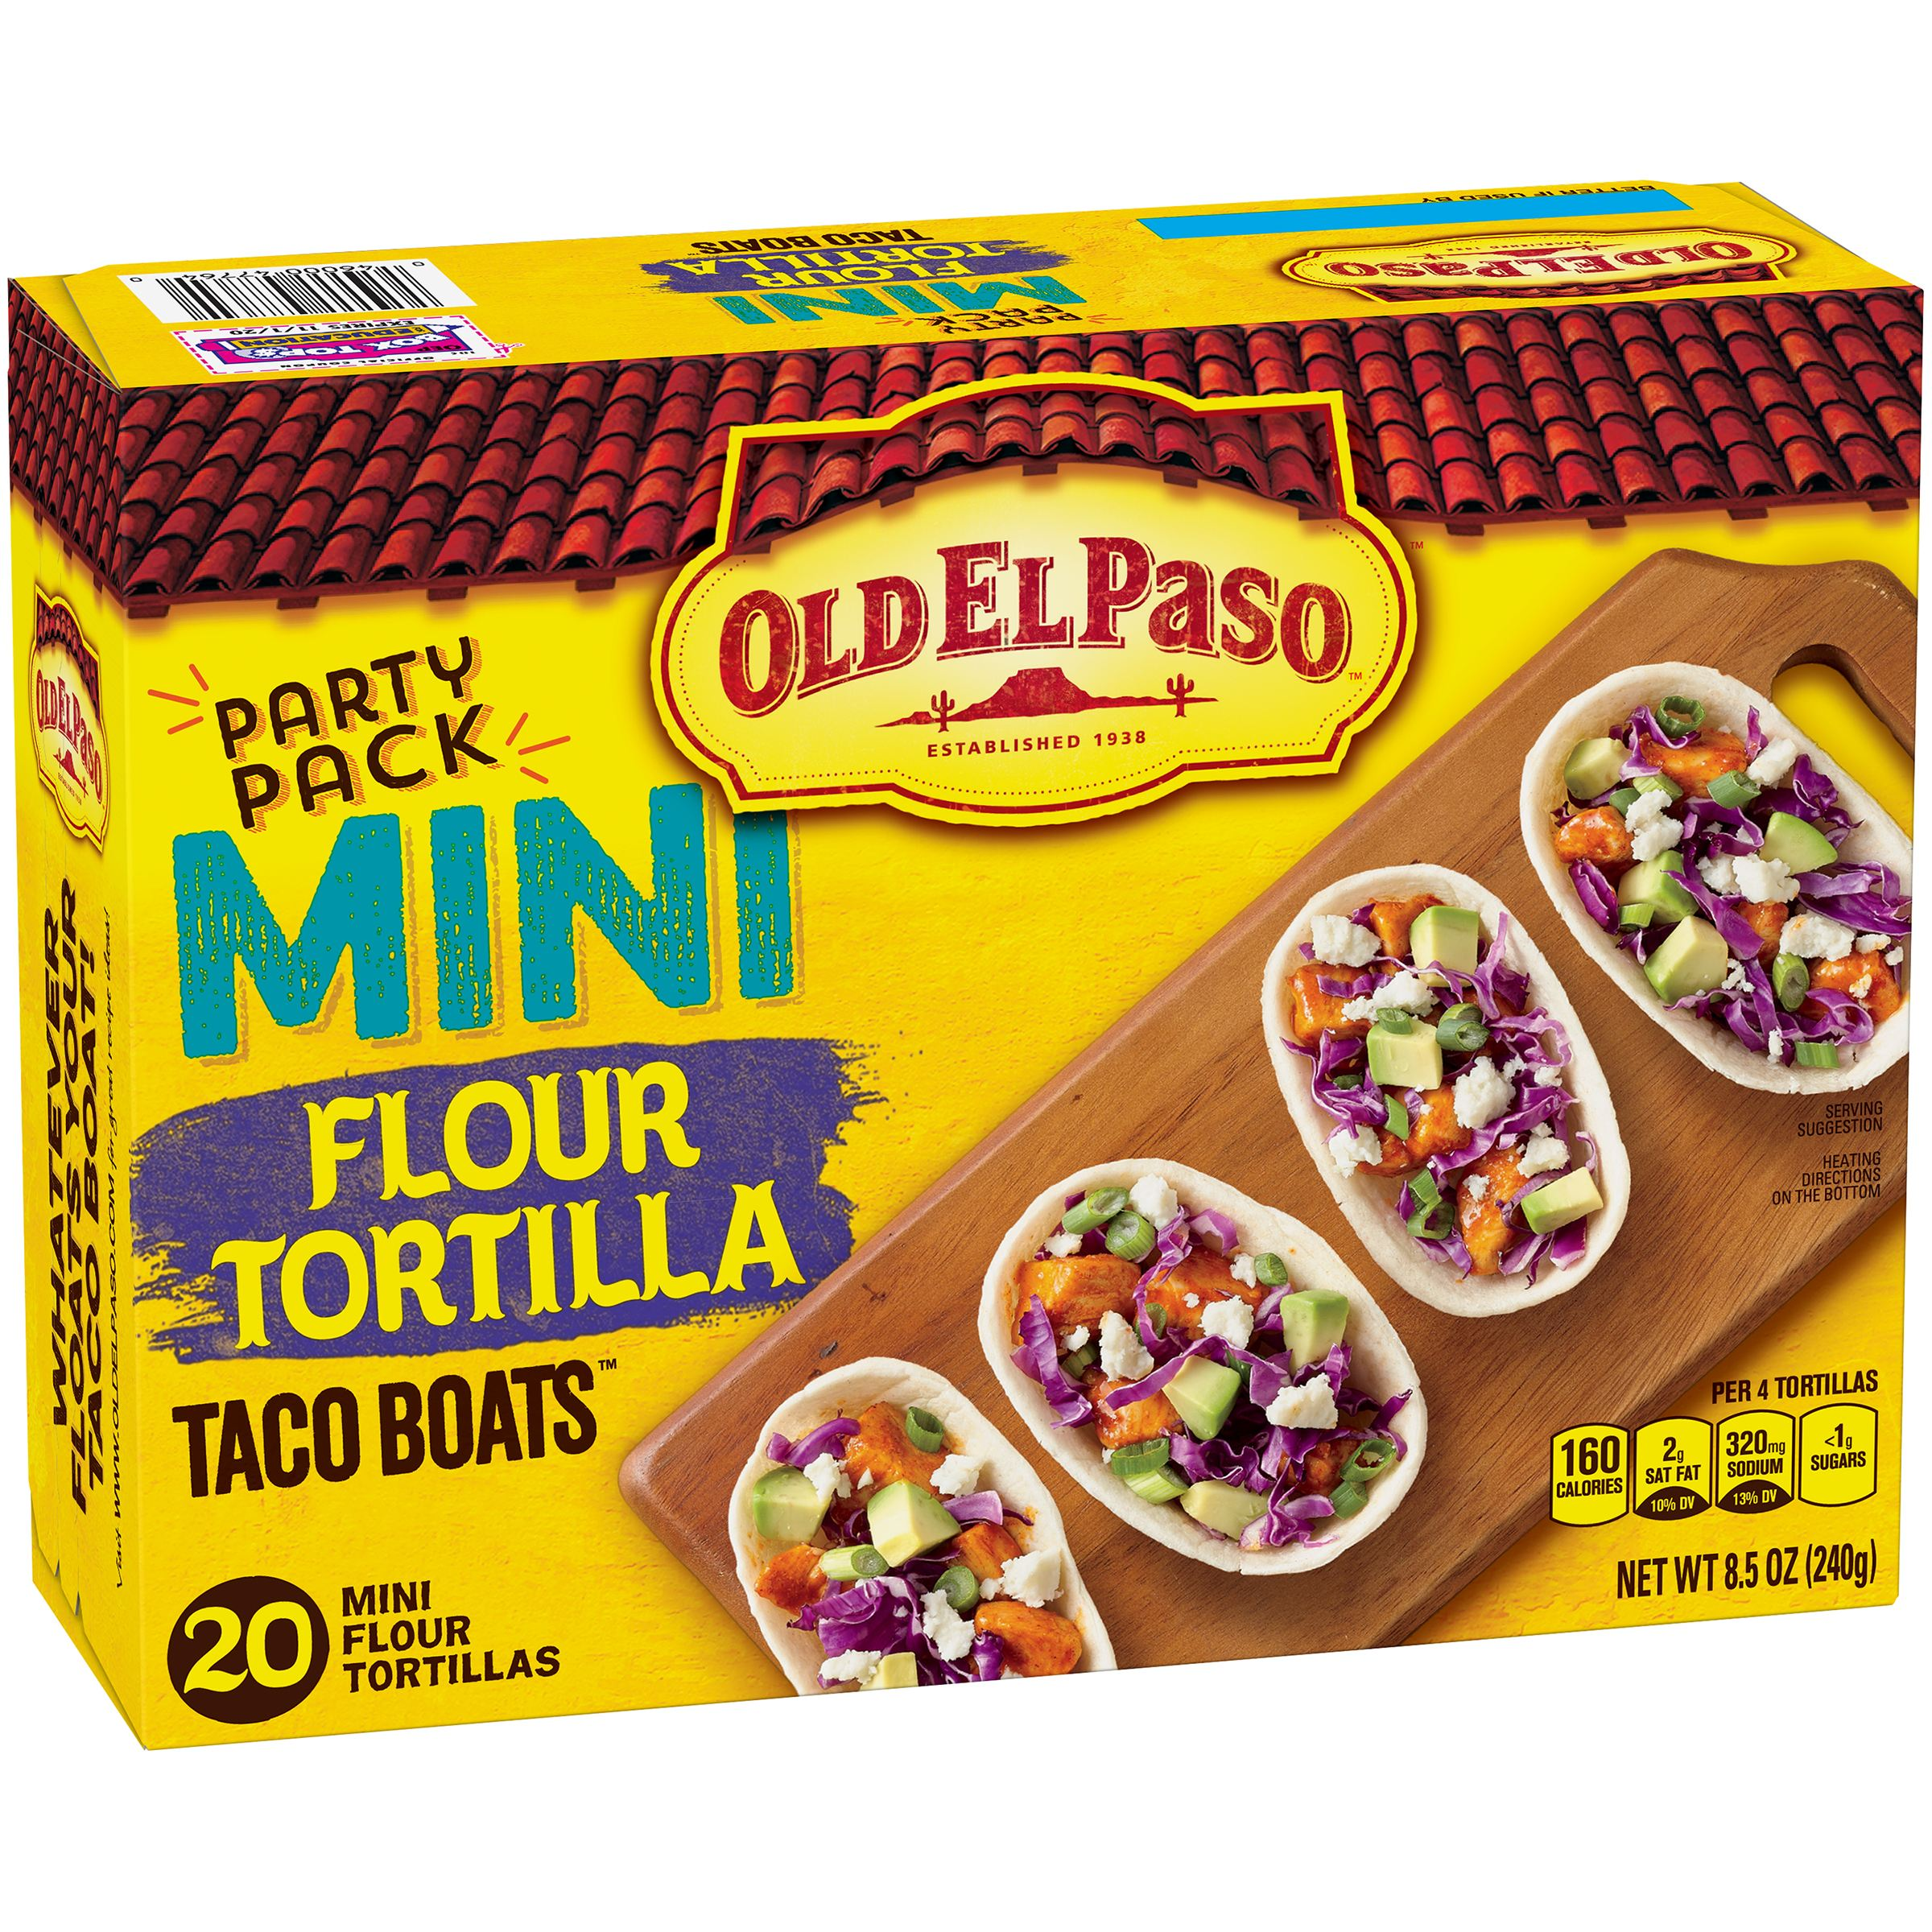 Old El Paso Mini Tortilla Taco Boats, 20 Count by General Mills Sales, Inc.